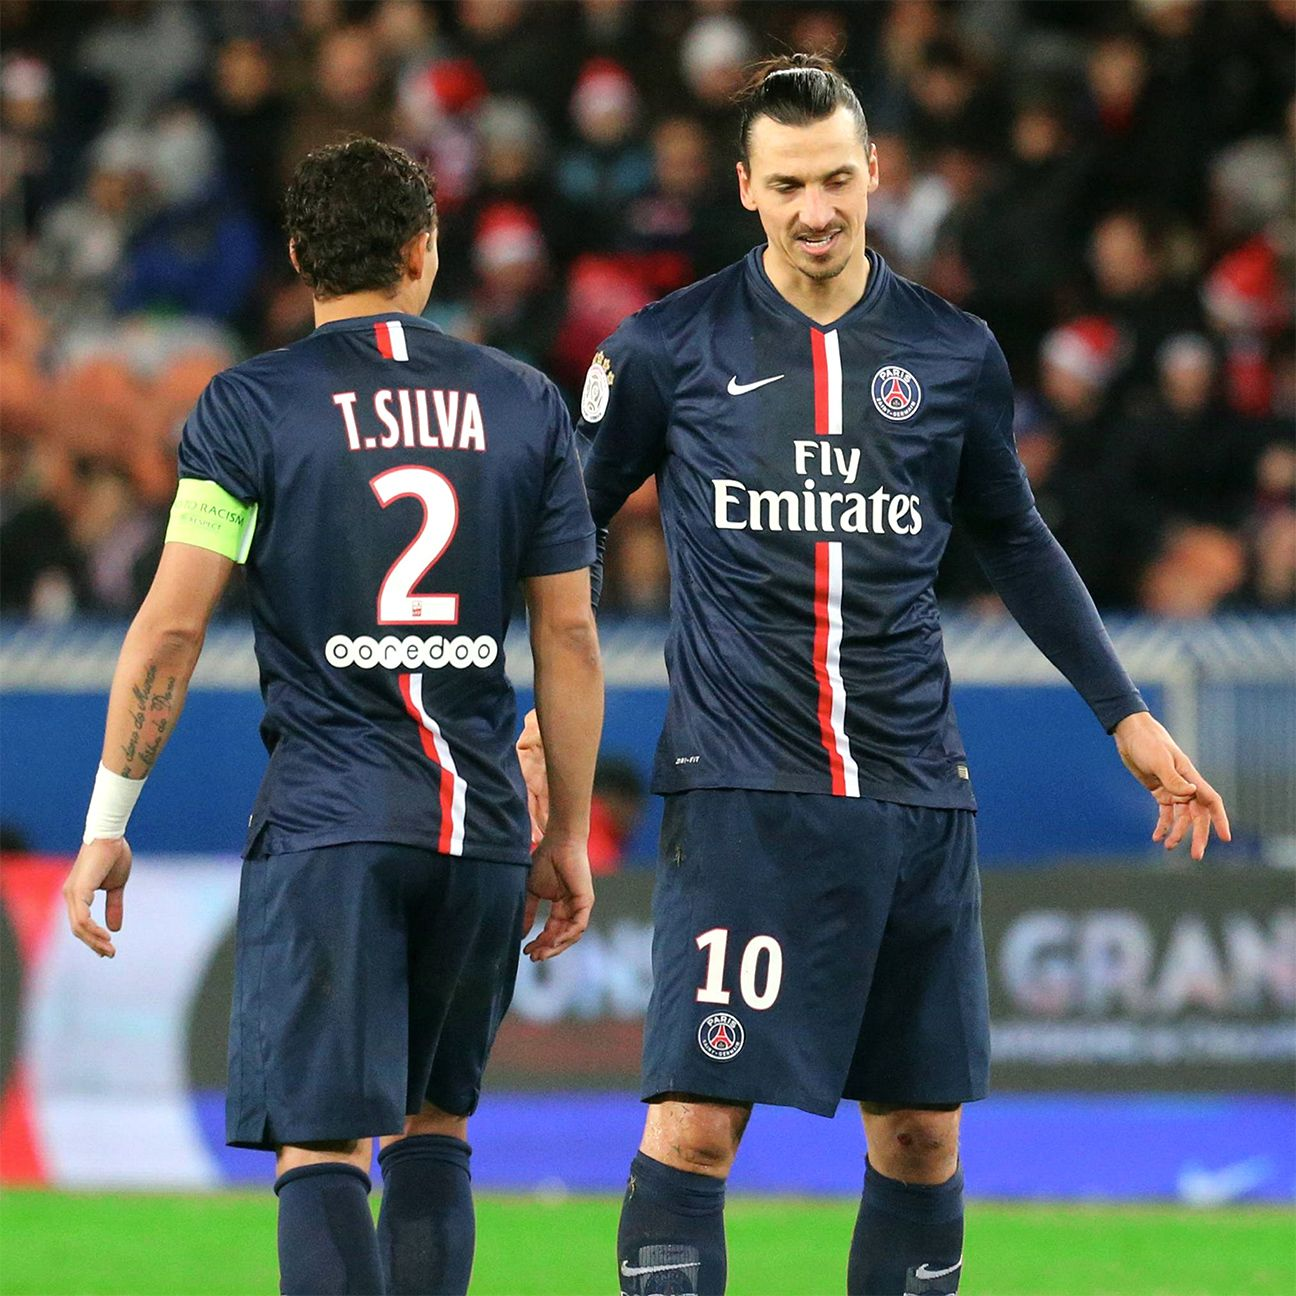 The eyes of all PSG fans will be focused squarely on team captain Thiago Silva and talisman Zlatan Ibrahimovic in Tuesday's clash with Chelsea.